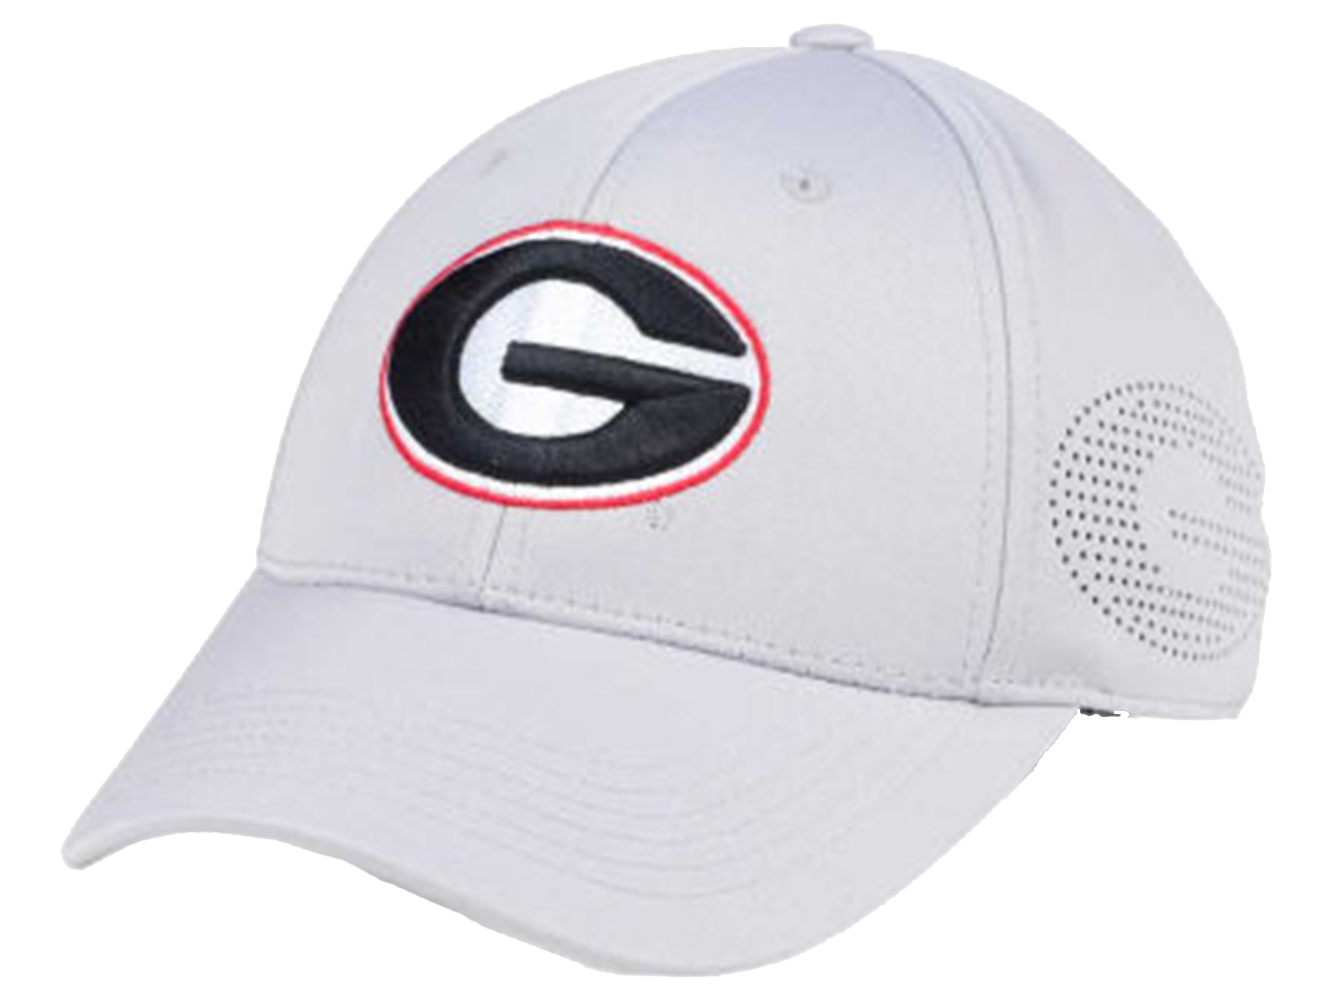 Details about Top Of The World Georgia Bulldogs Rails One Fit Light Grey Hat 2f4c94fccf1